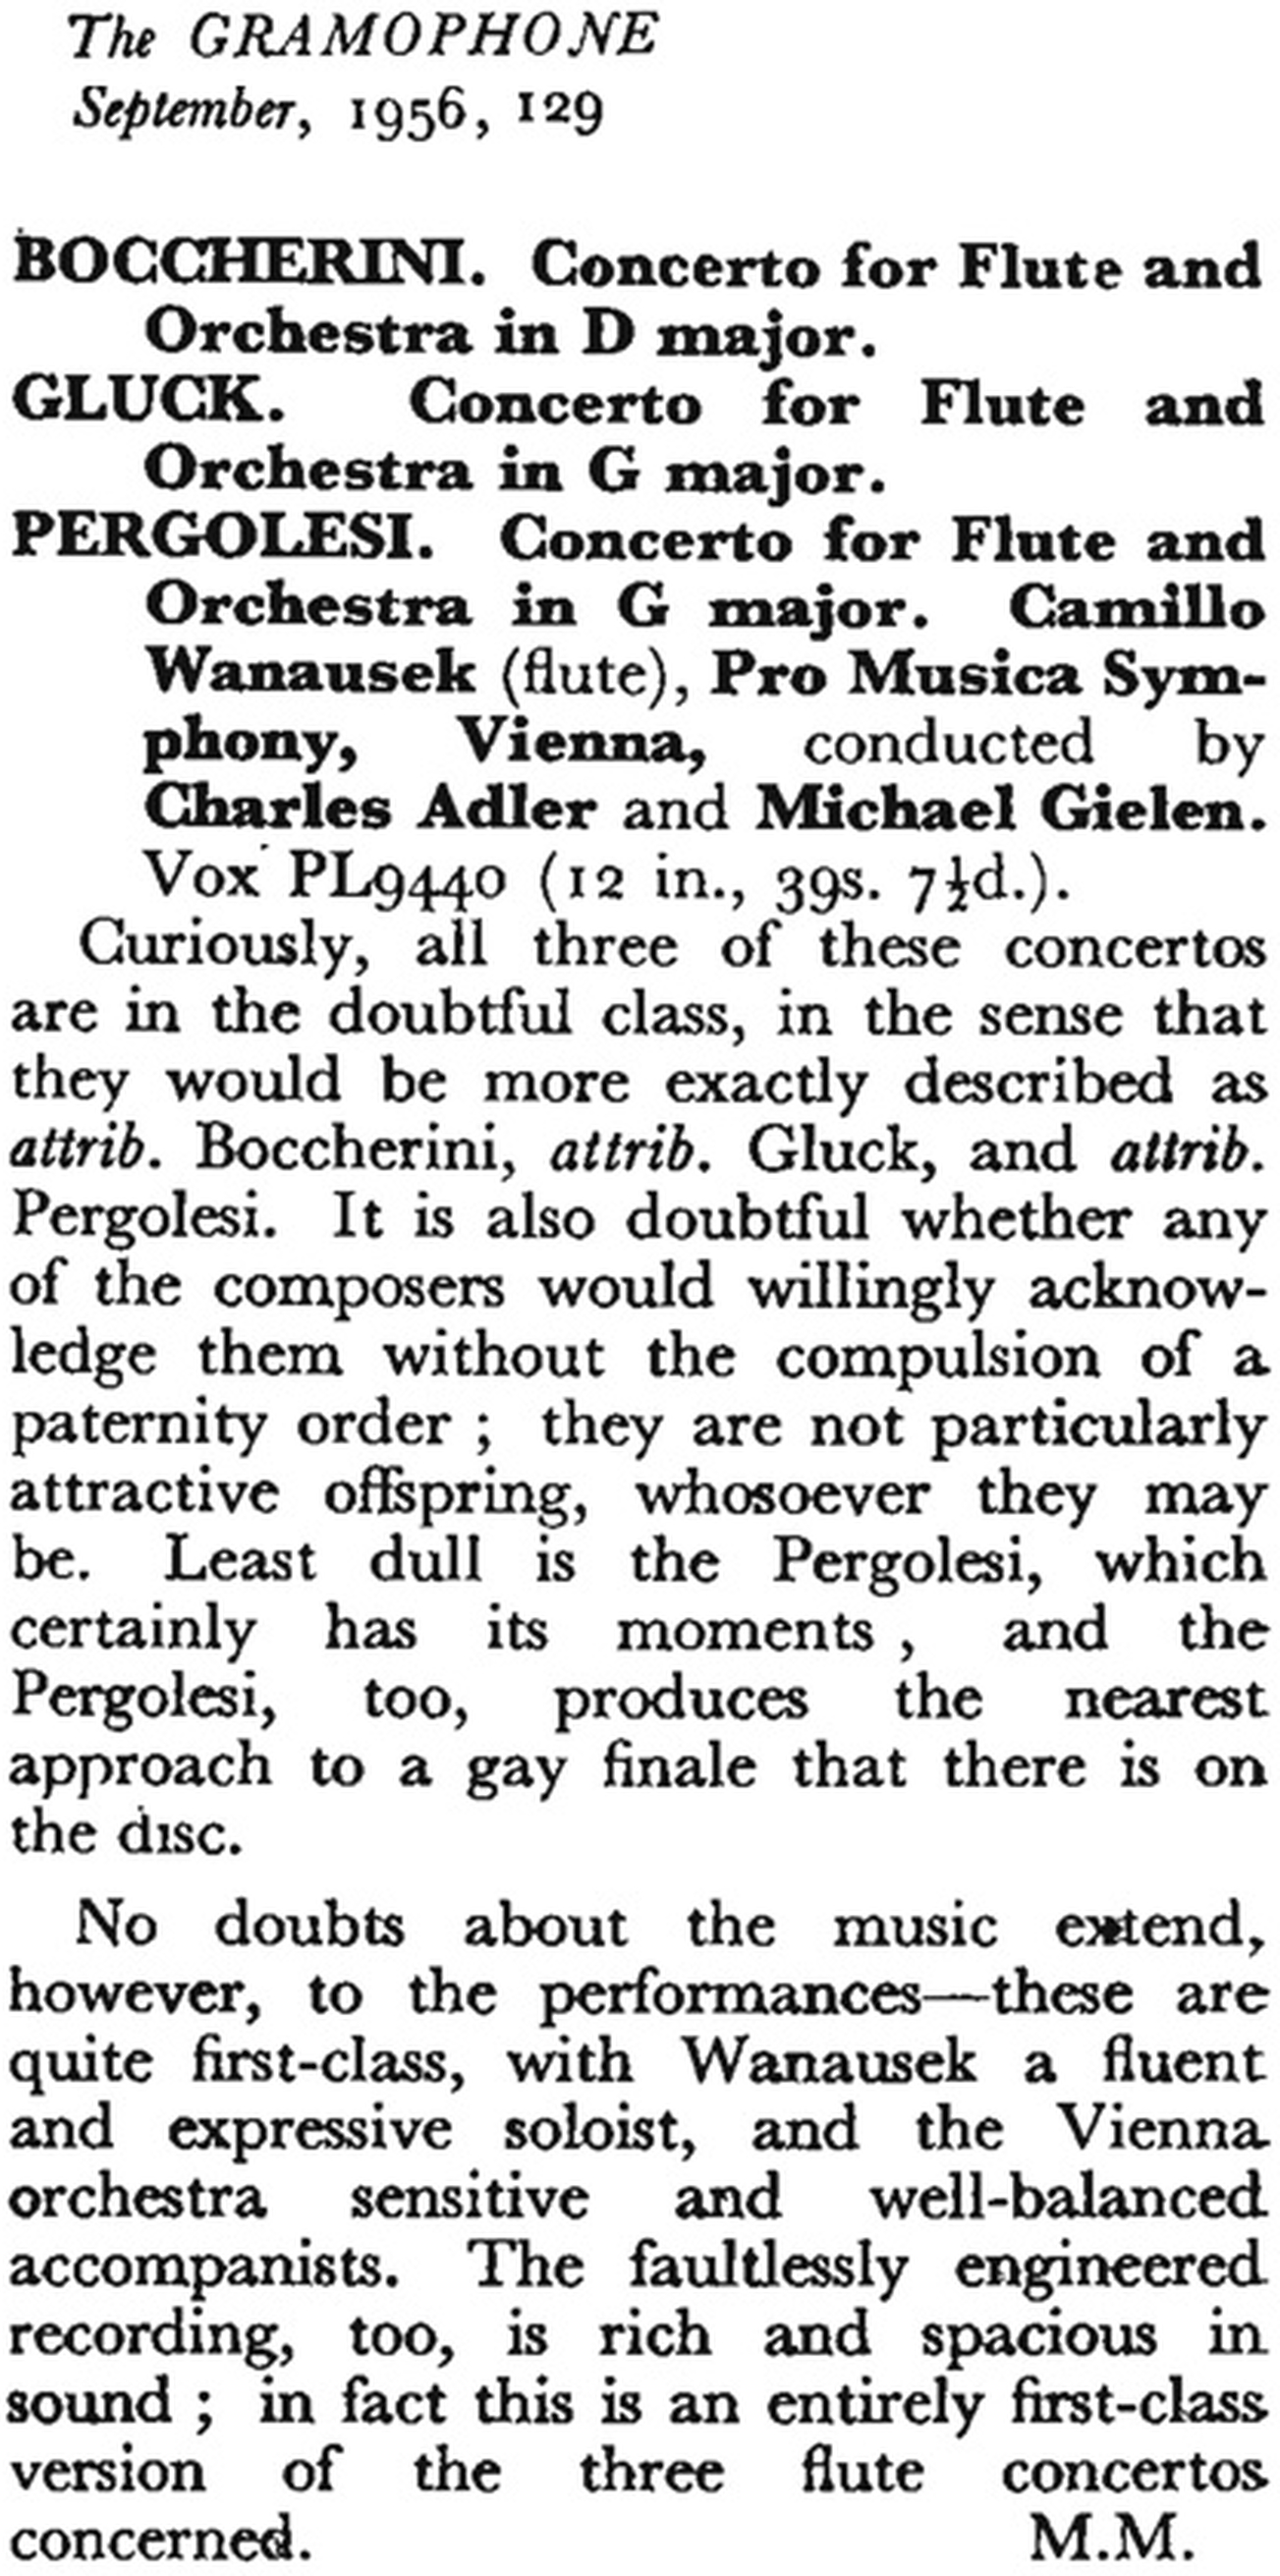 PL 9440 TheGramophone 09 1956 page 129